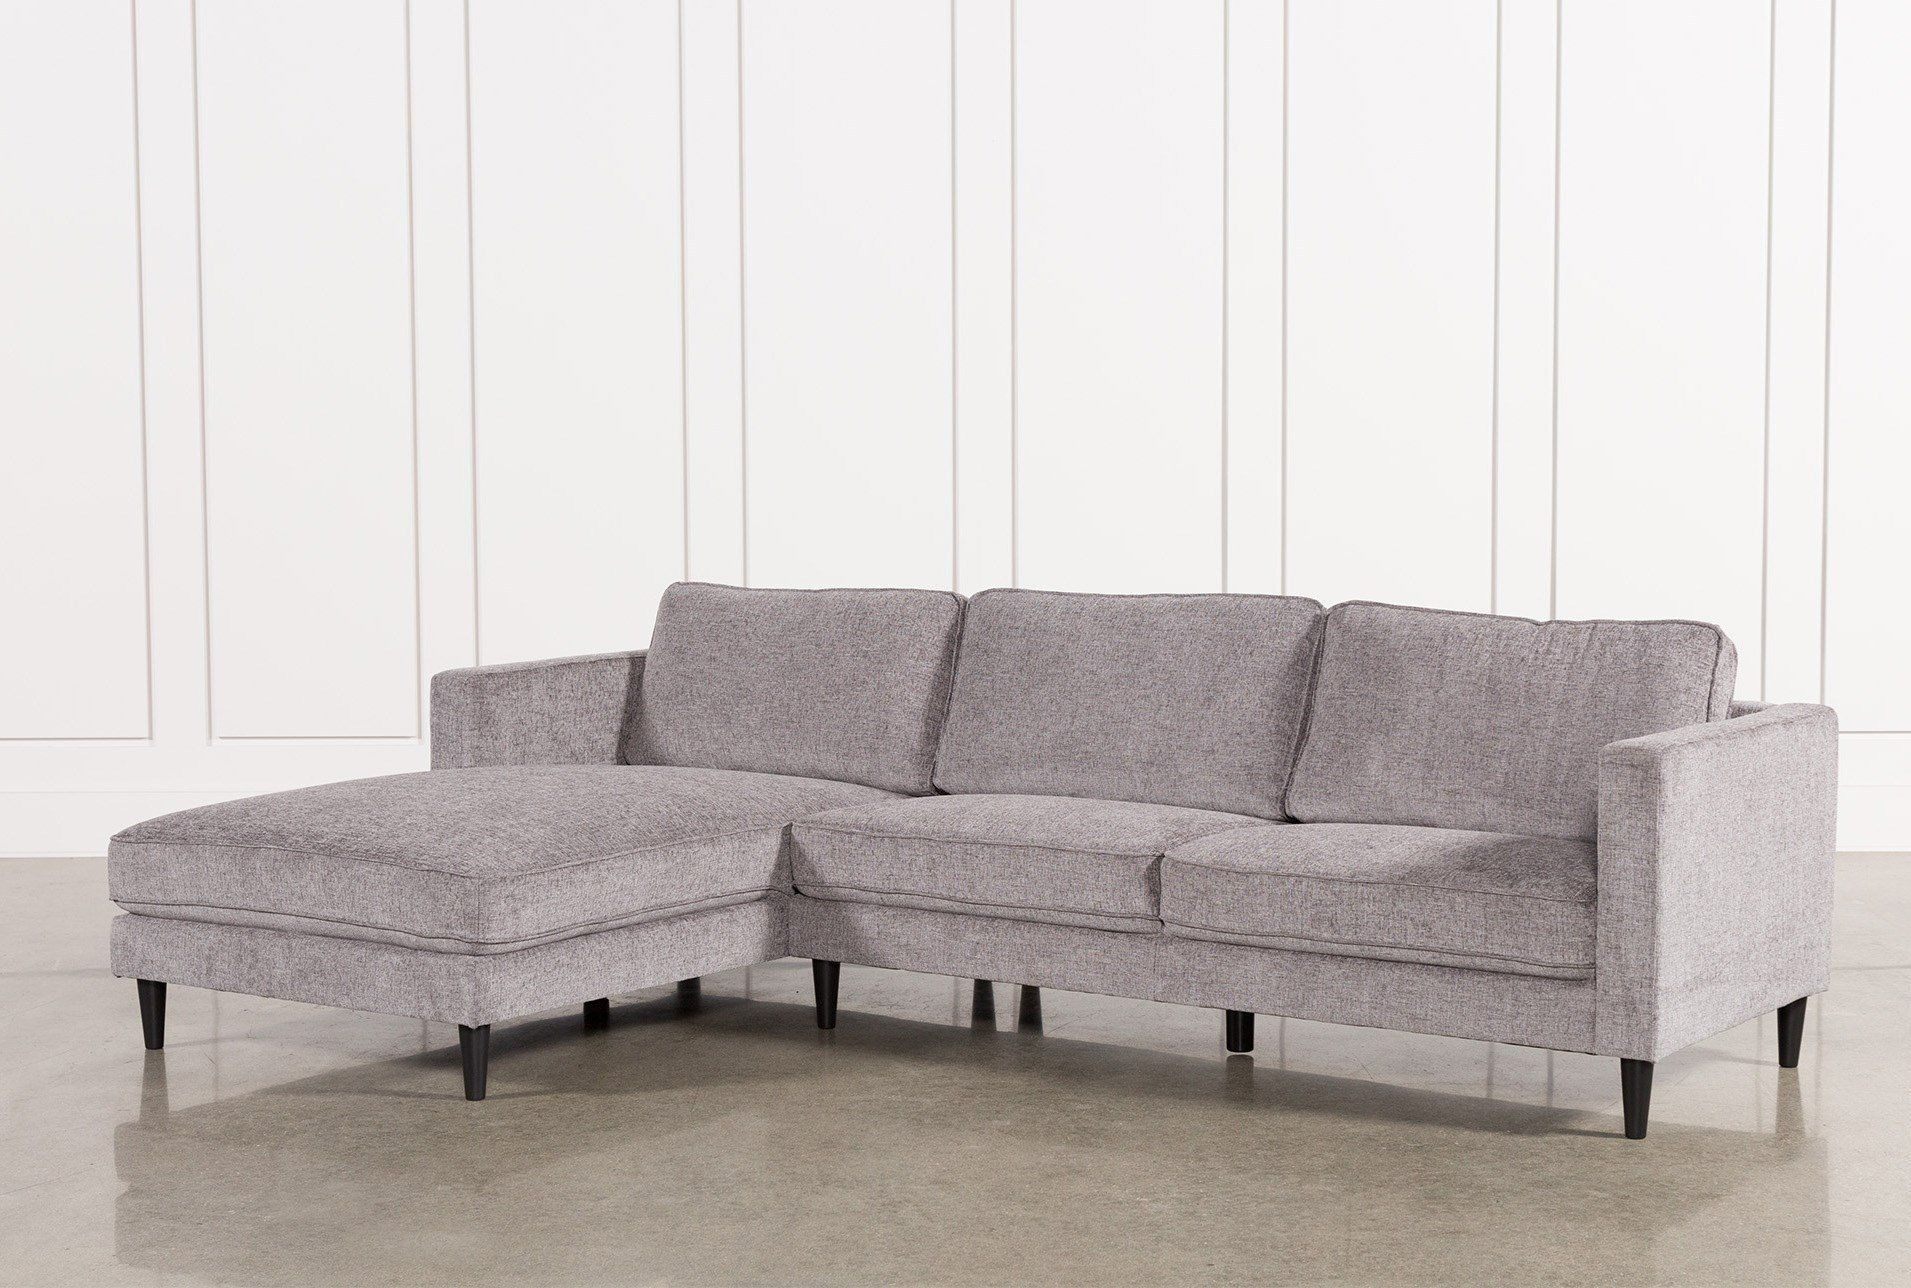 Cosmos Grey 2 Piece Sectional W/laf Chaise | Couches | Pinterest regarding Avery 2 Piece Sectionals With Raf Armless Chaise (Image 10 of 30)